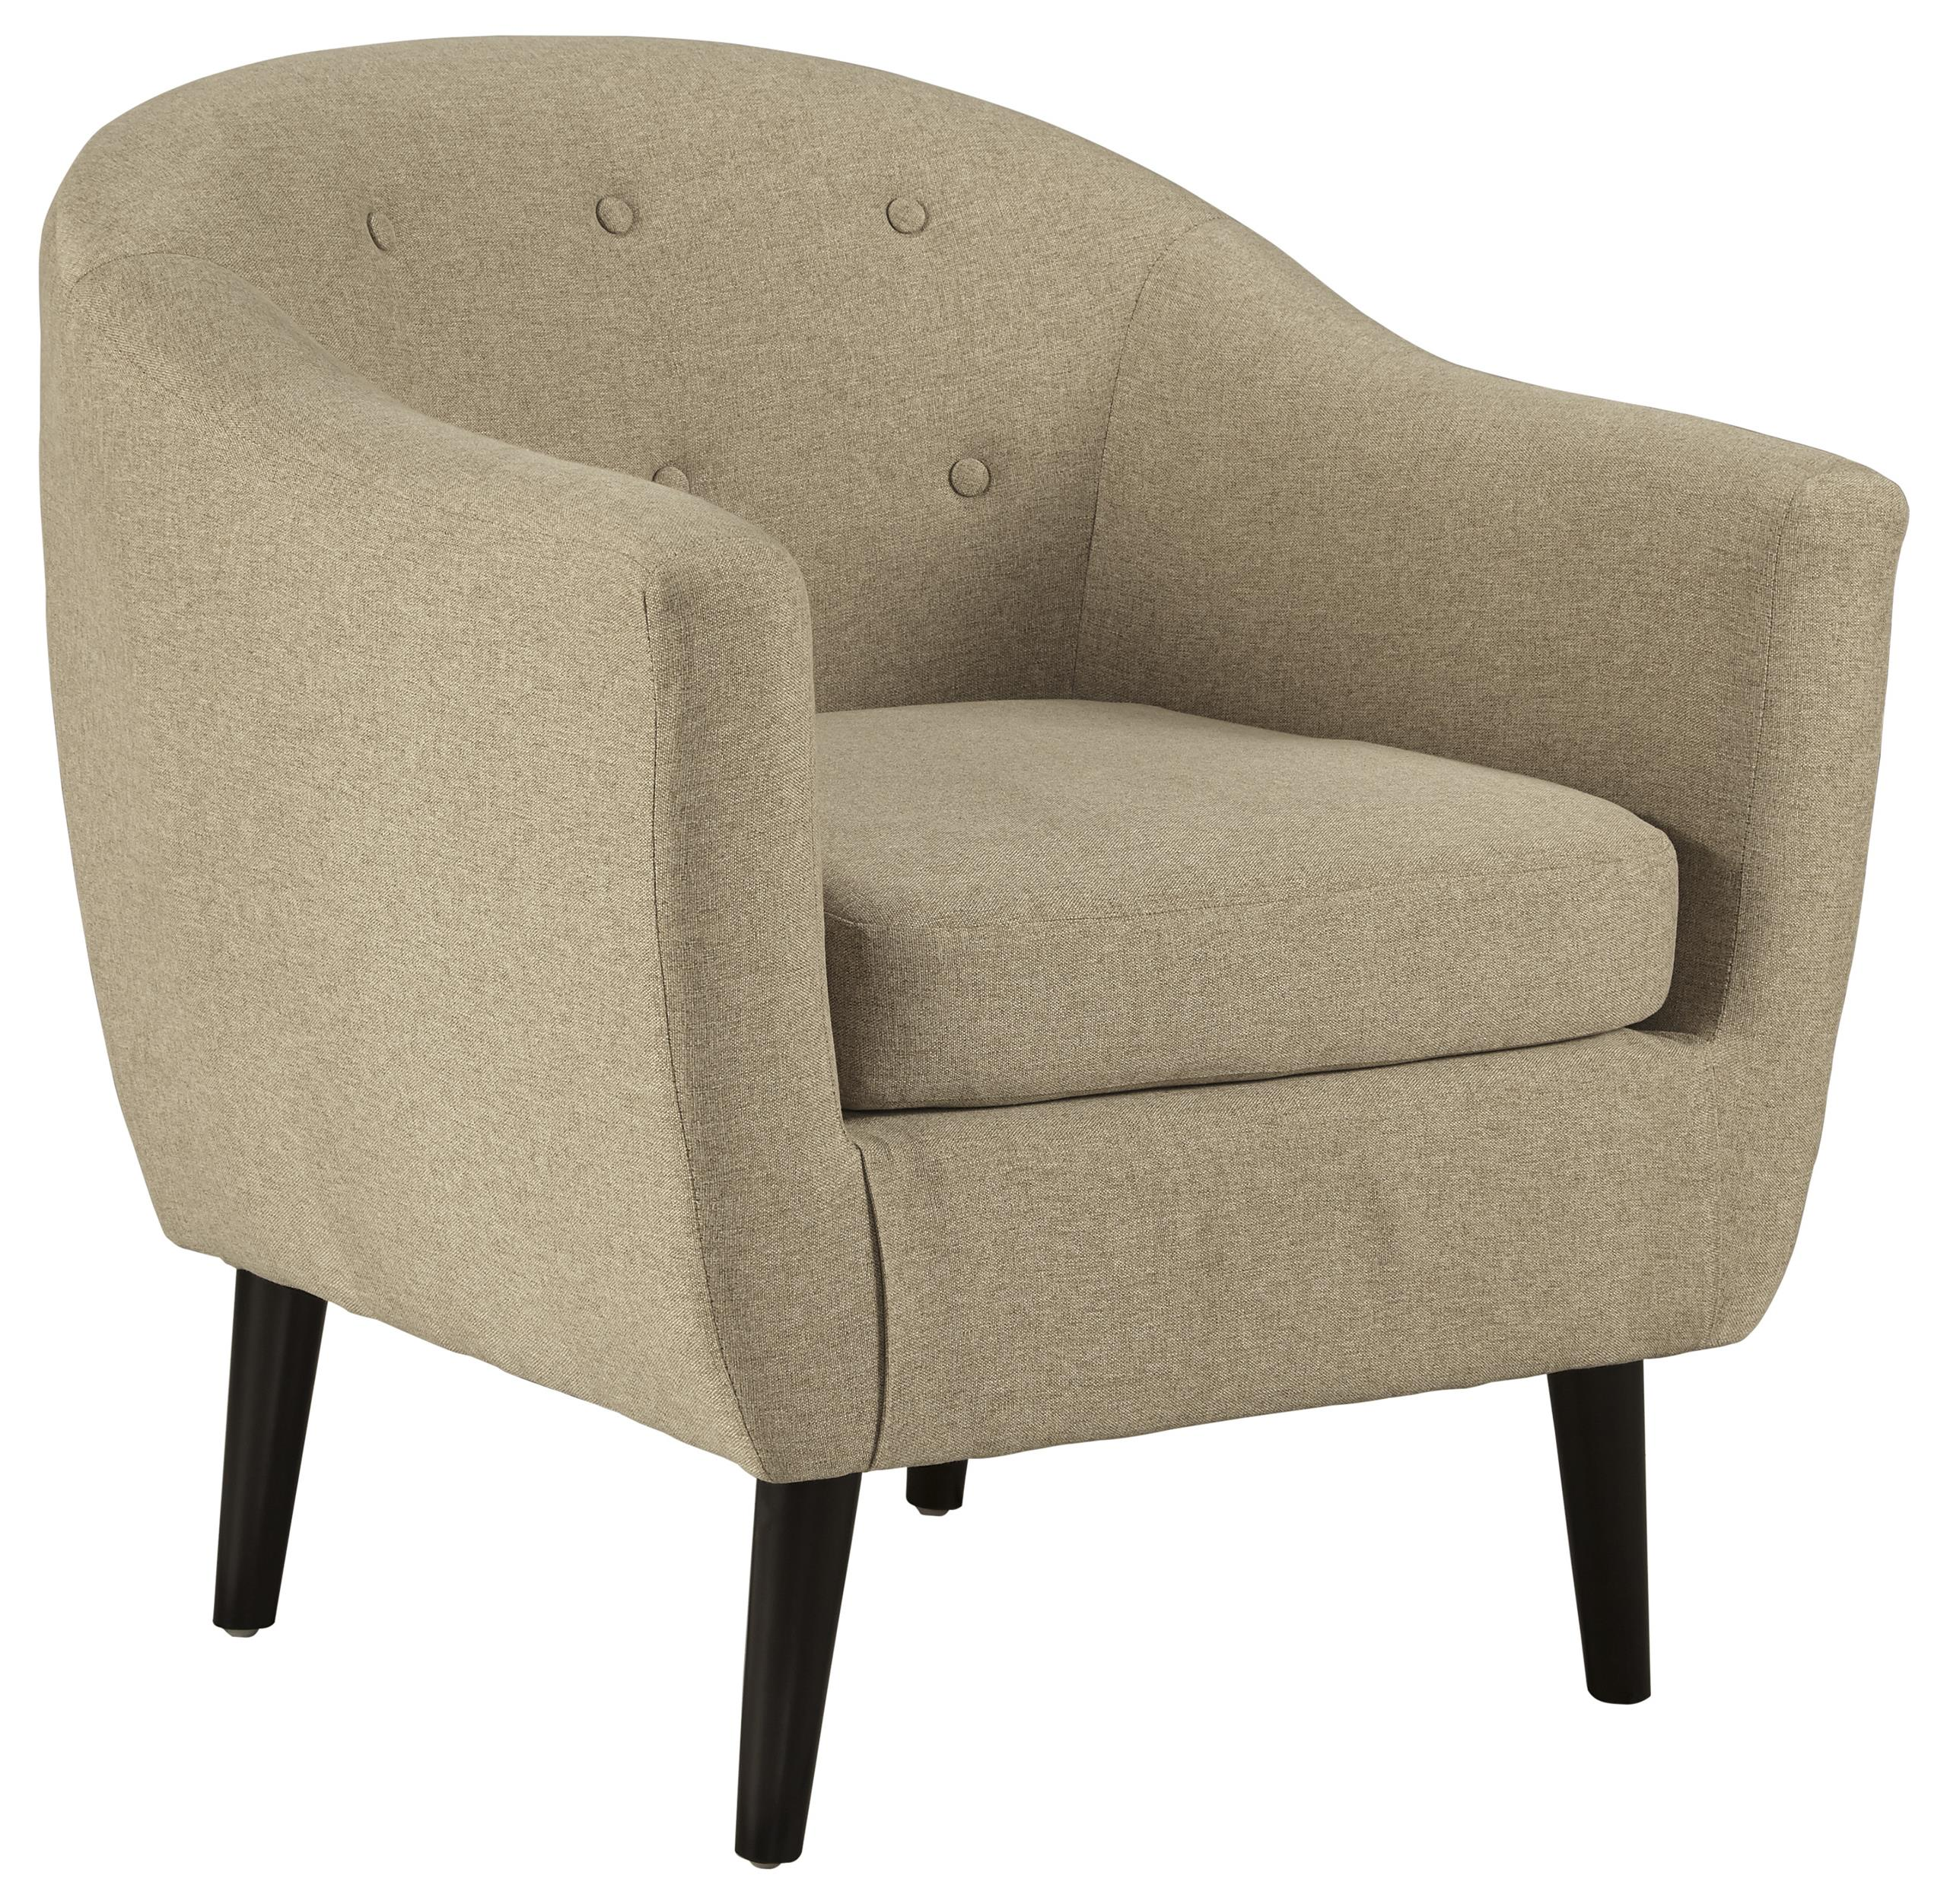 Signature Design by Ashley Klorey Accent Chair - Item Number: 3620621